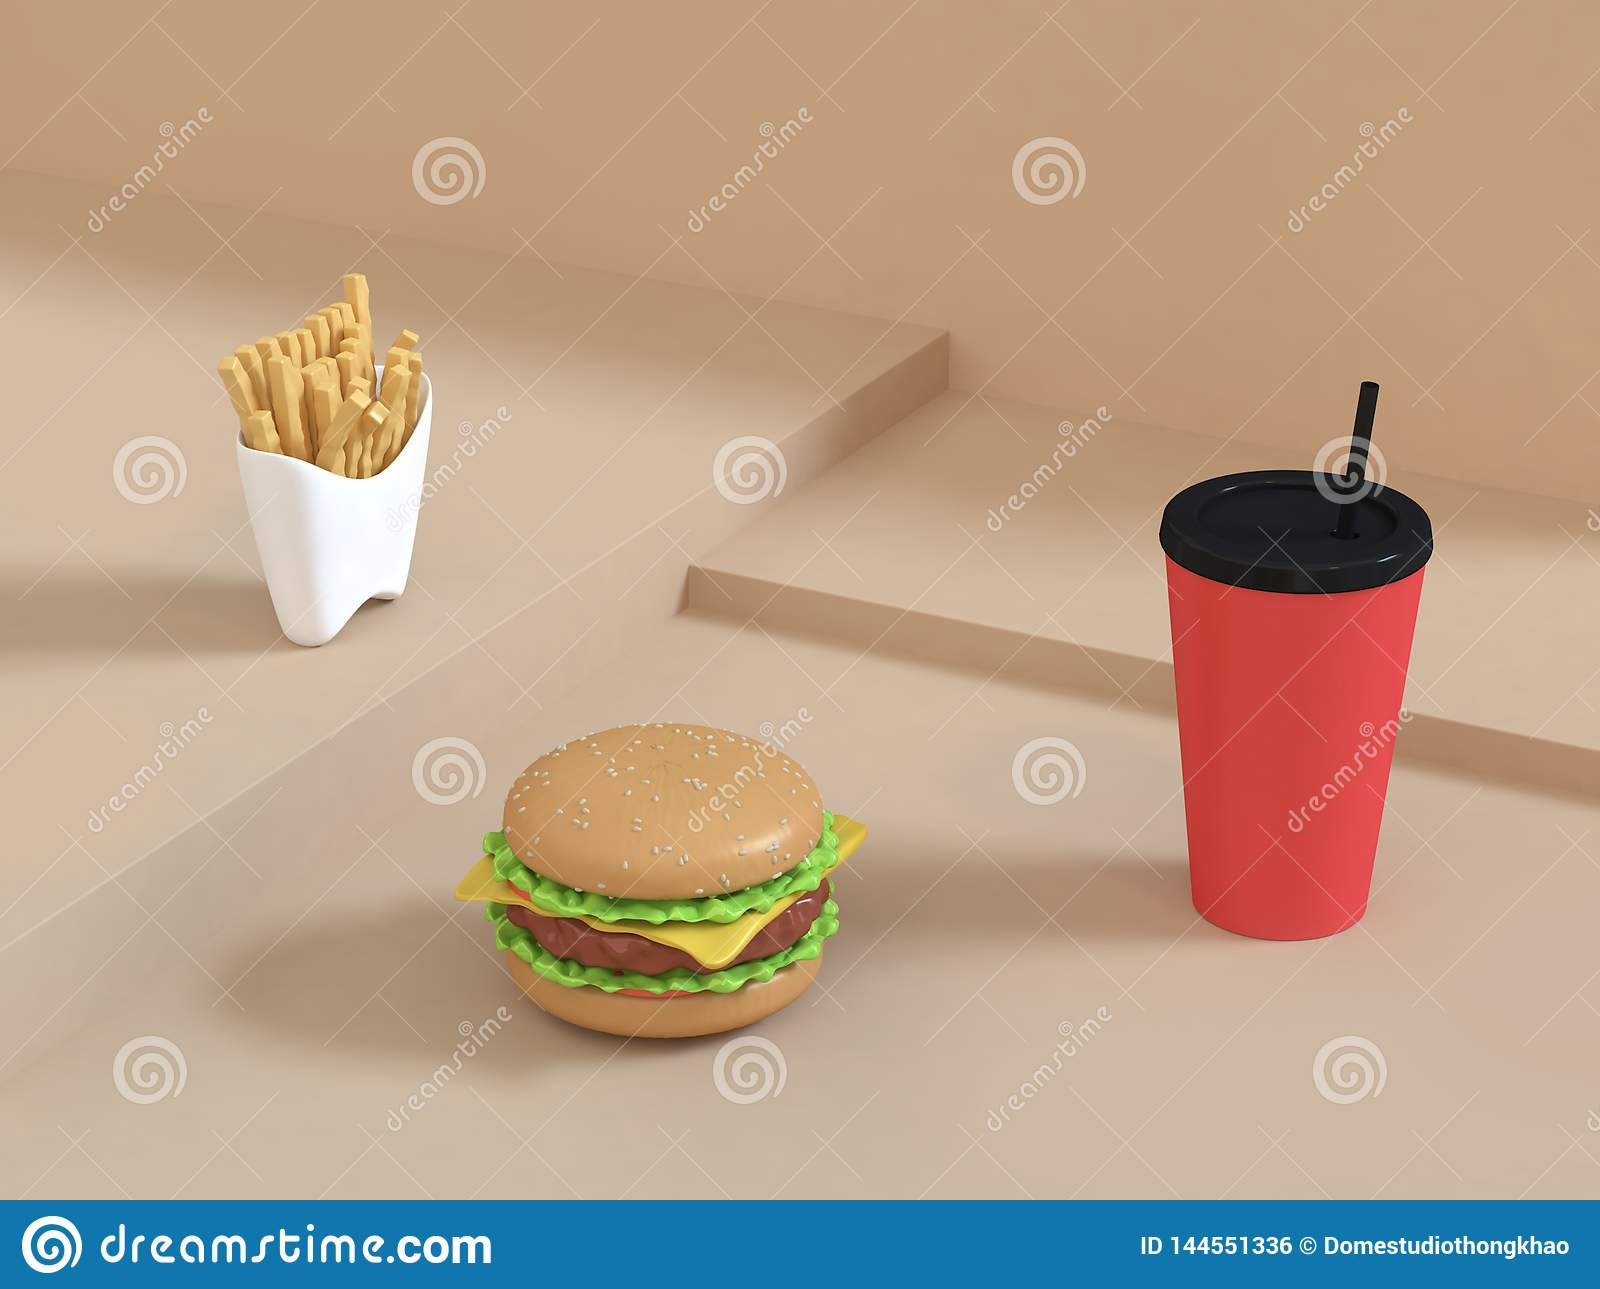 Fast food cartoon style hamburger set on abstract cream scene with red cup french fries 3d rendering